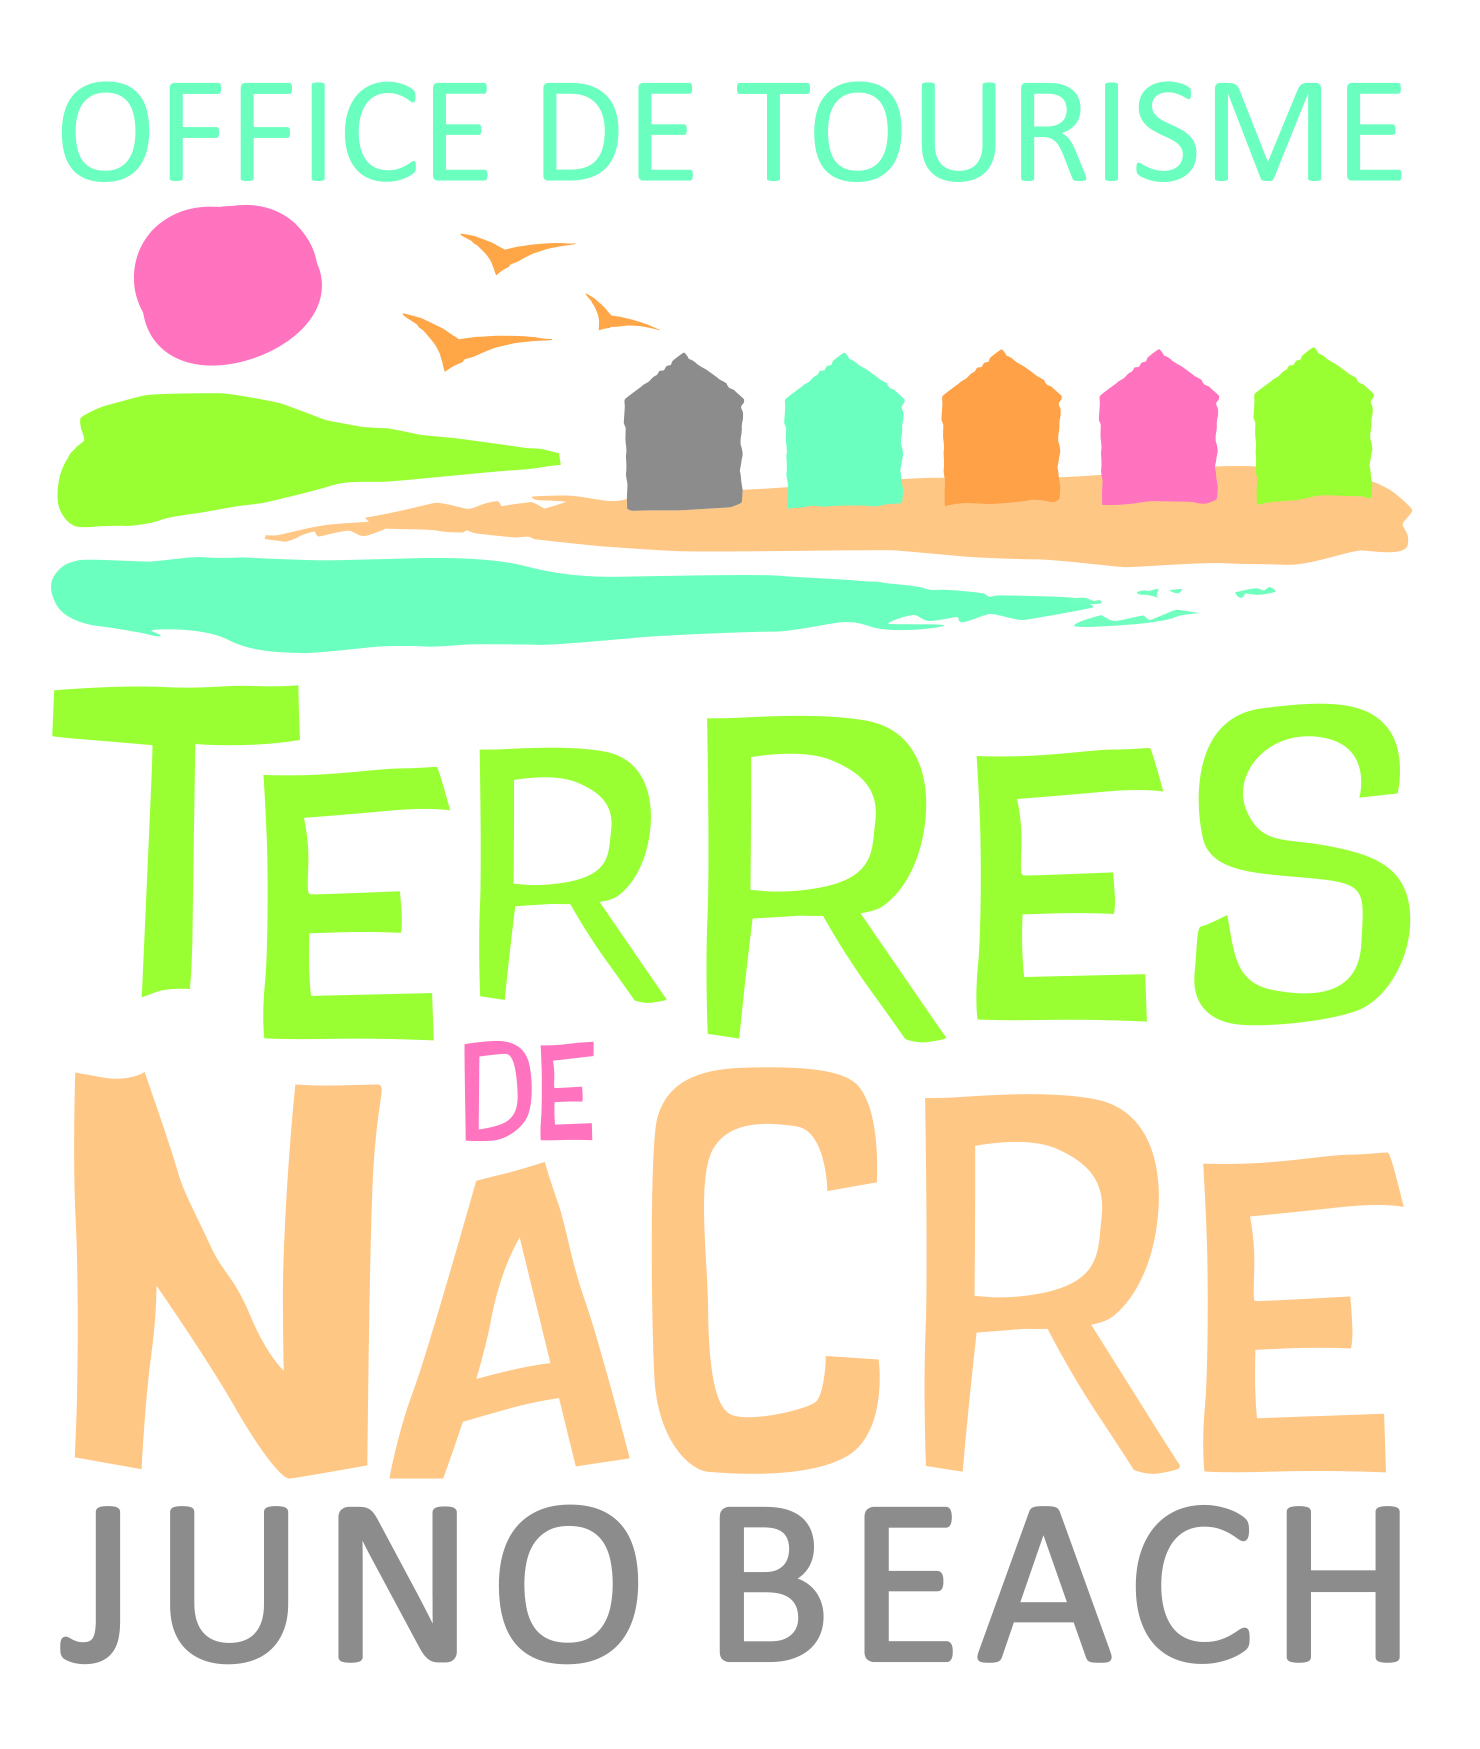 Office de Tourisme Terres de Nacre